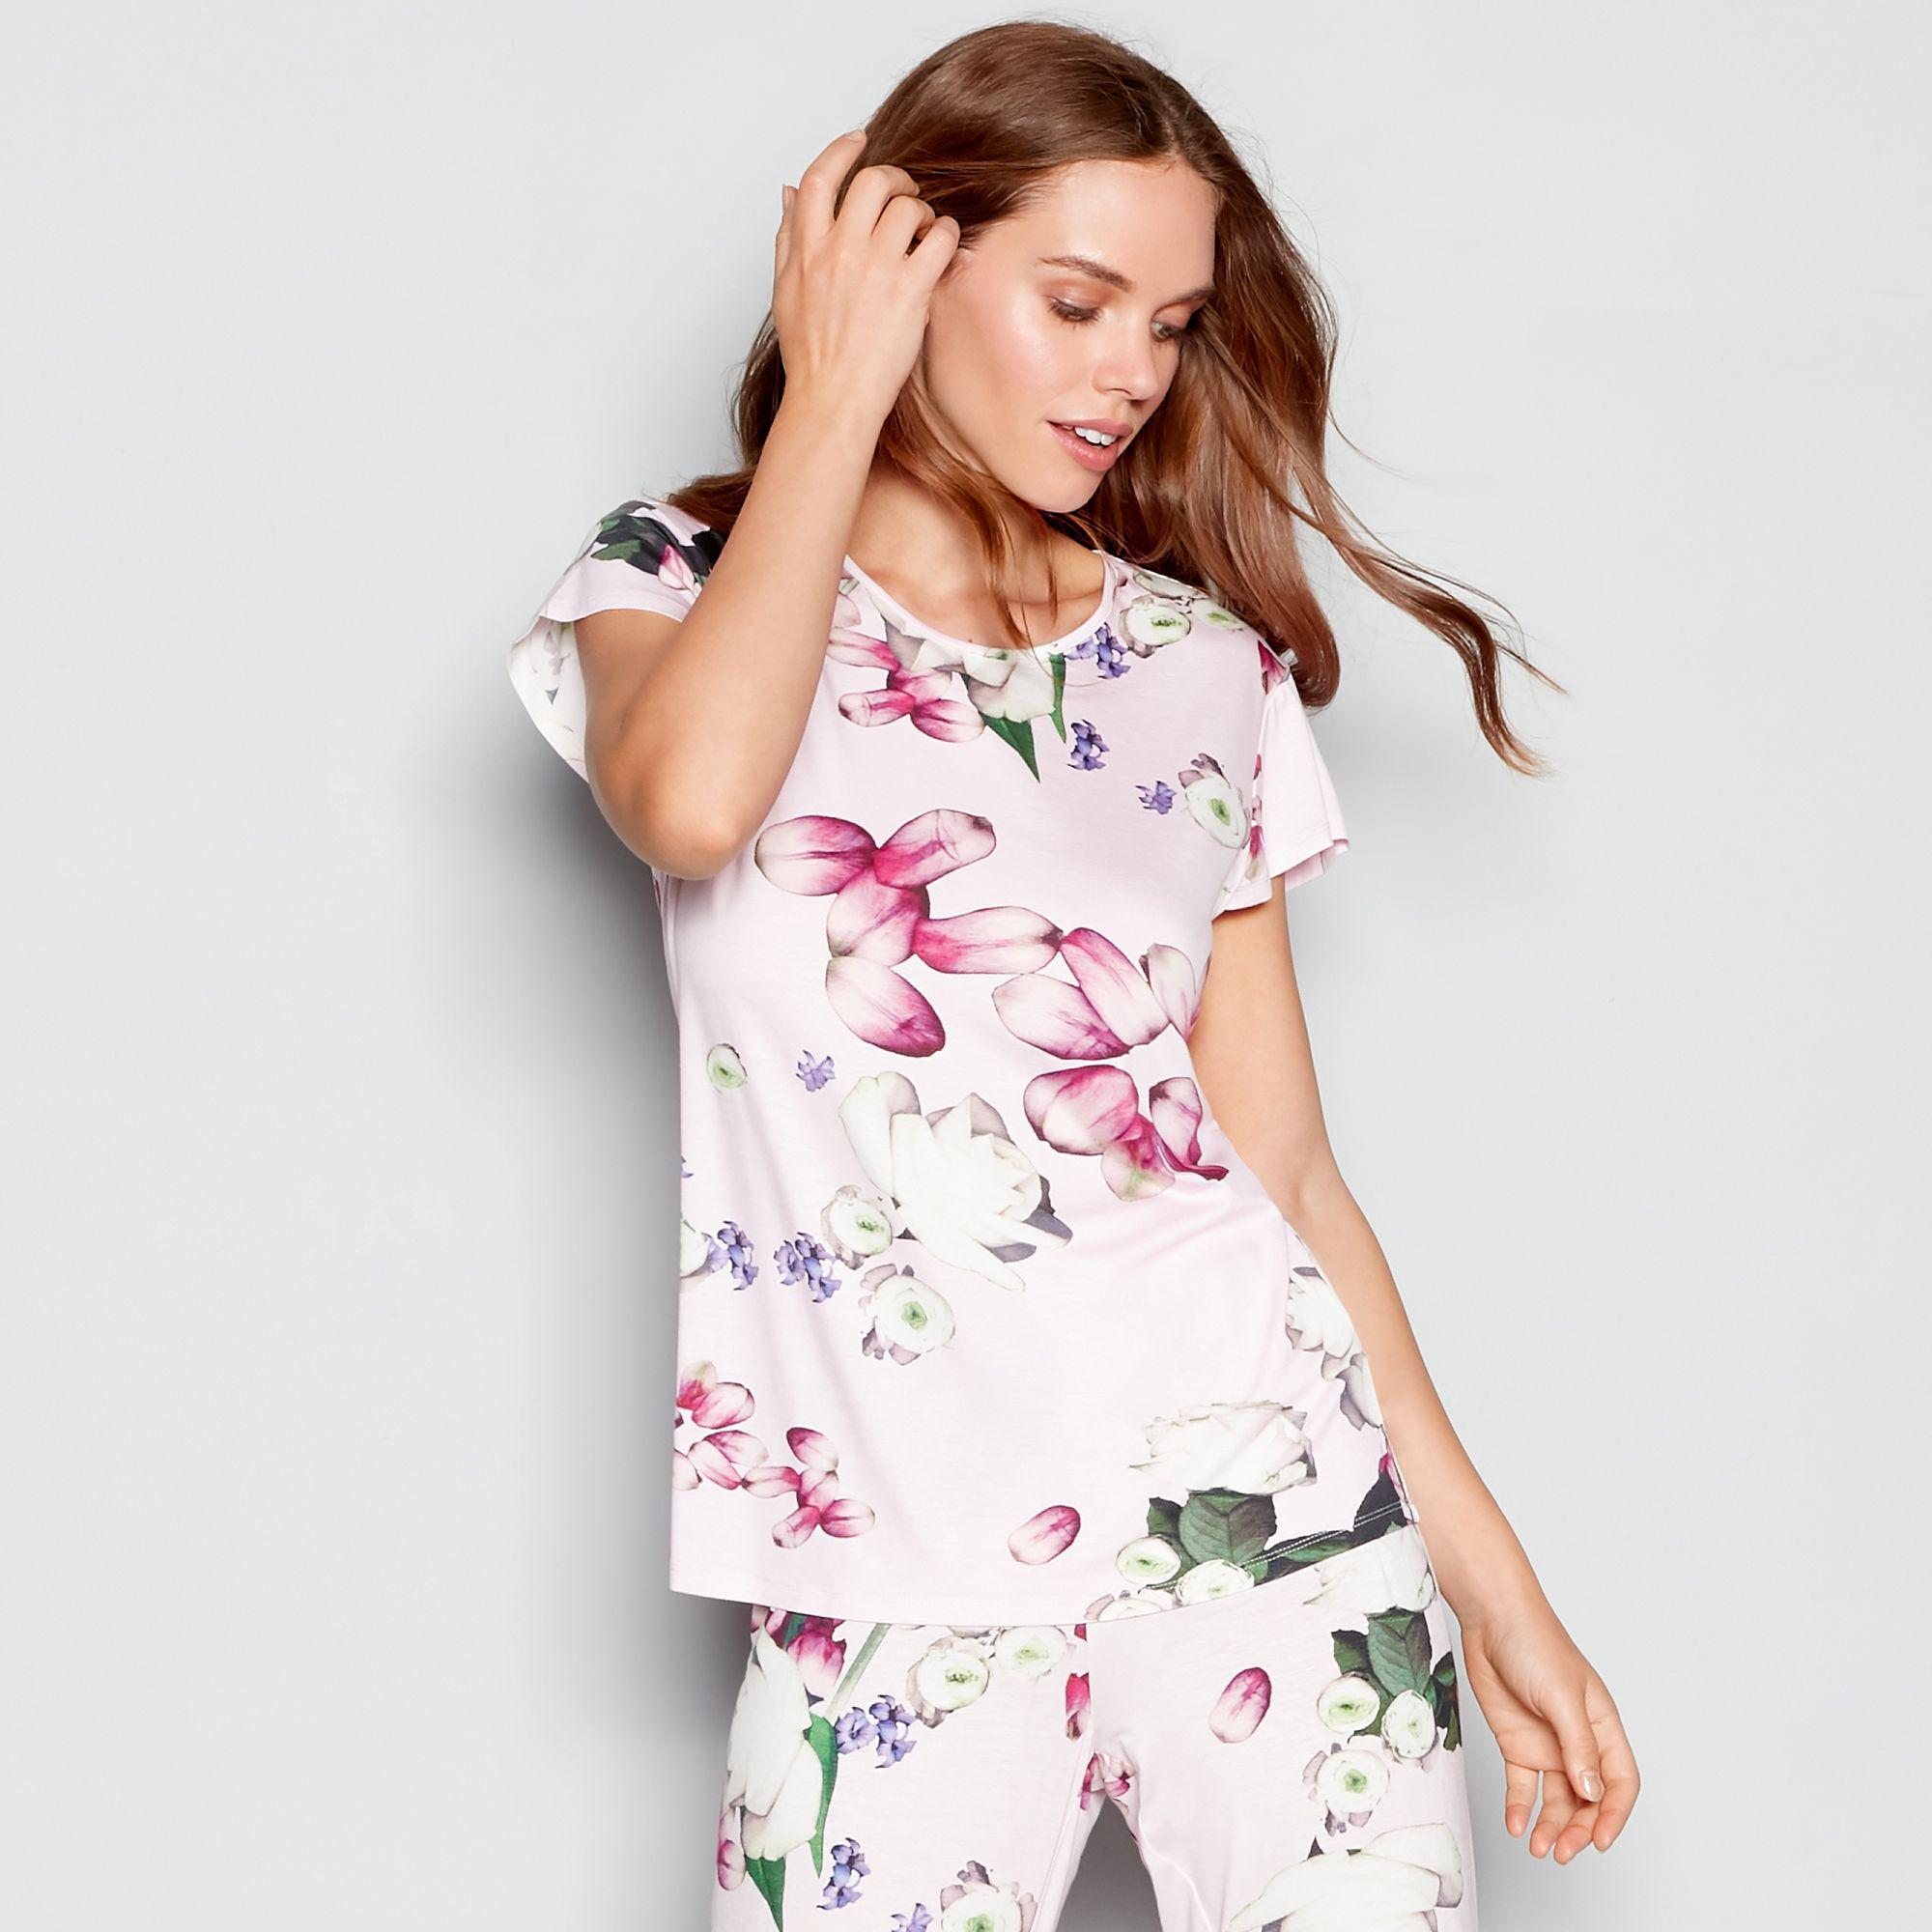 b53781246decdf Ted Baker Light Pink Floral Print  kensington  Short Sleeve Pyjama ...